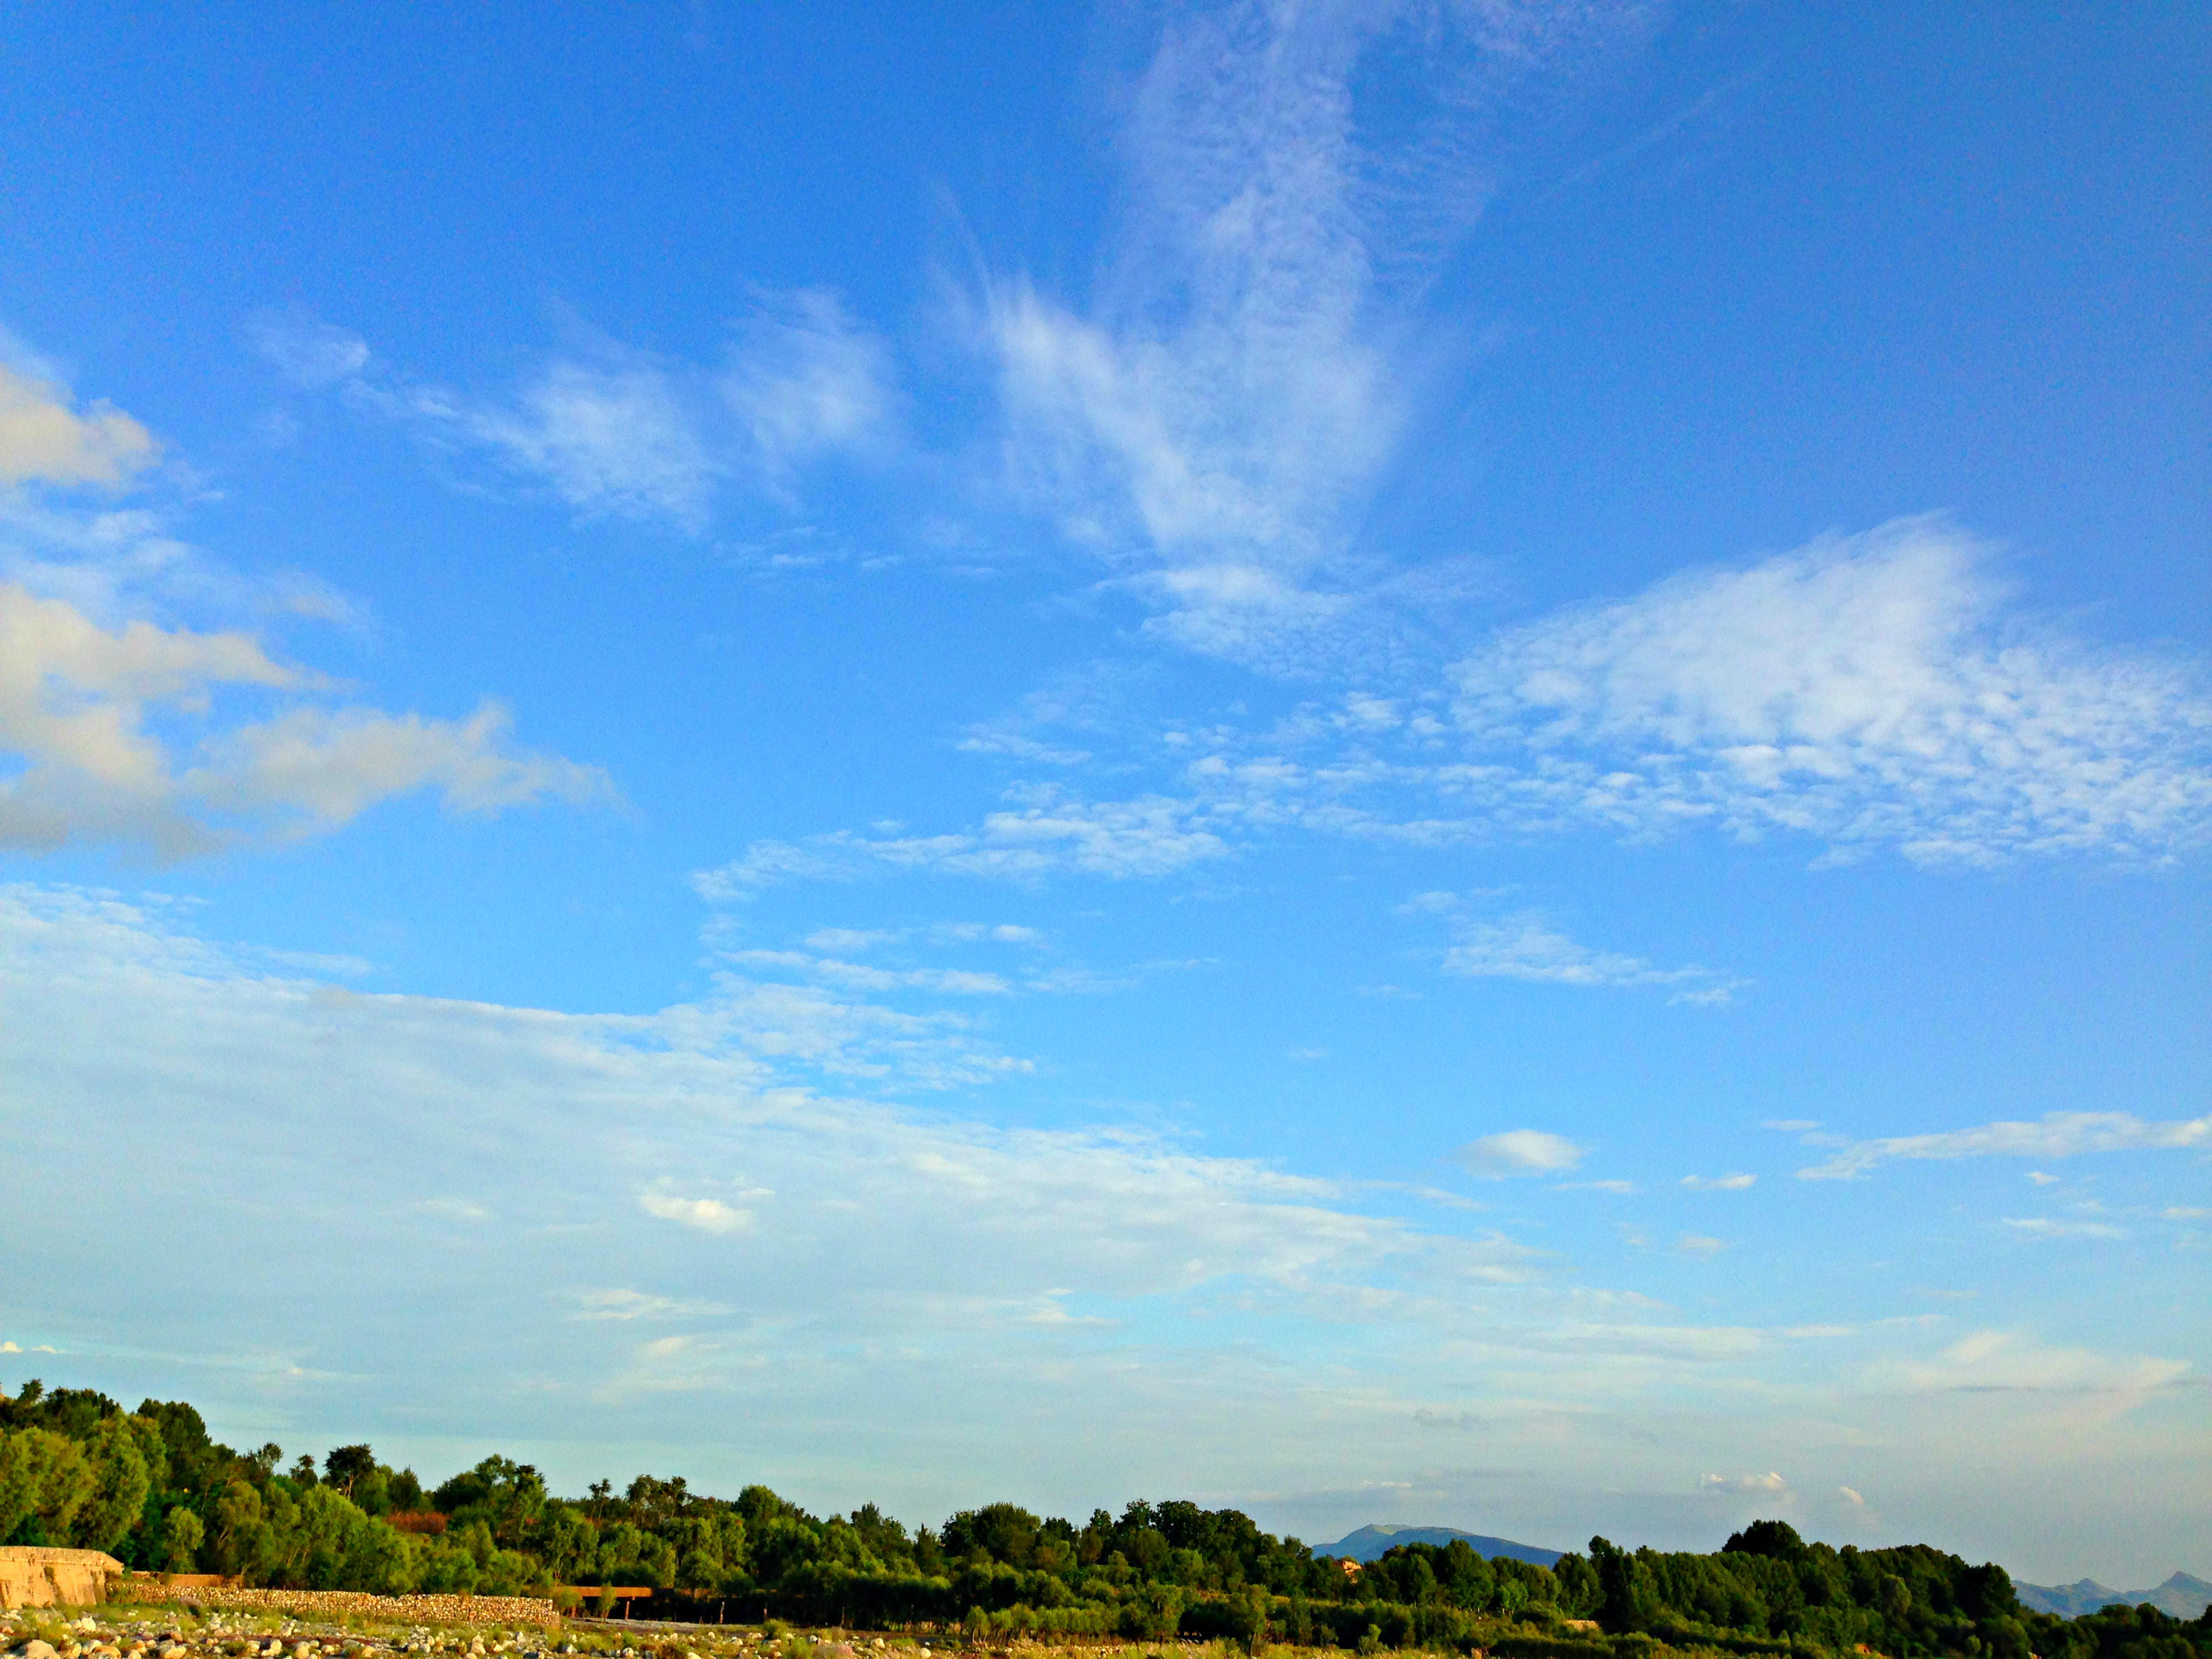 File:Beautiful Sky and Clouds Parachinar.jpg - Wikimedia Commons